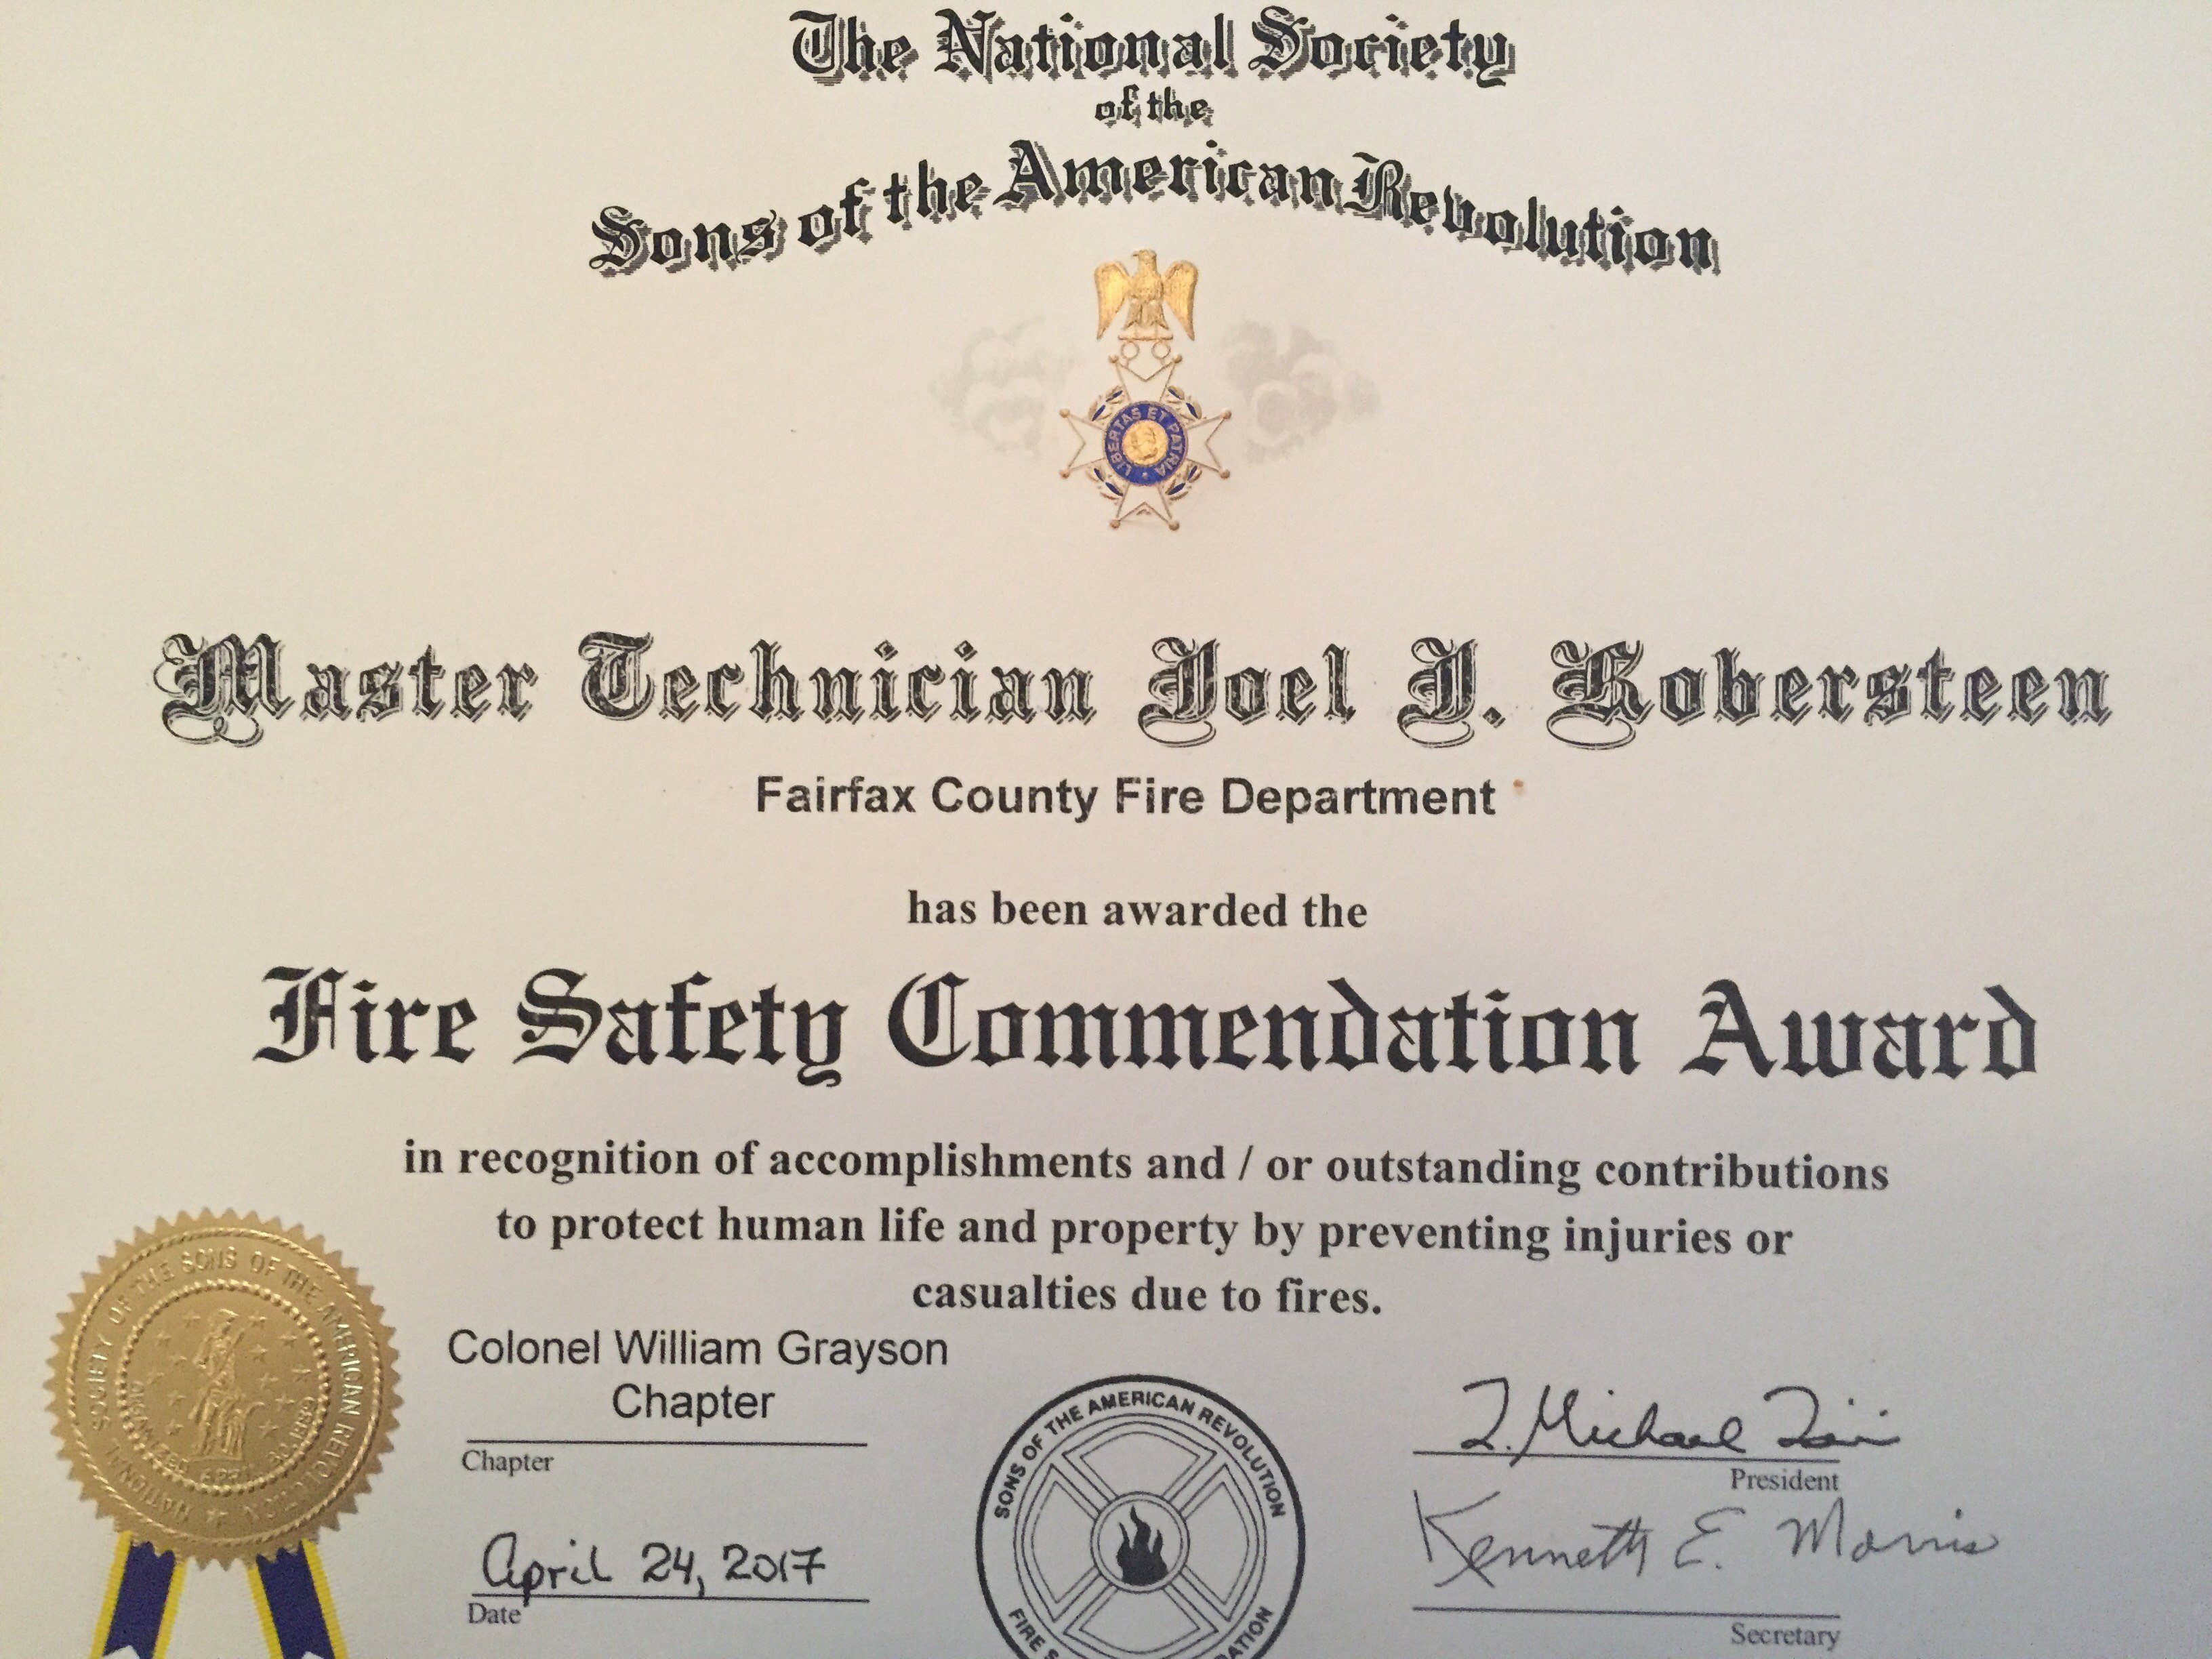 Honorary Firefighter Certificate Lovely sons the American Revolution Honor Two Firefighters